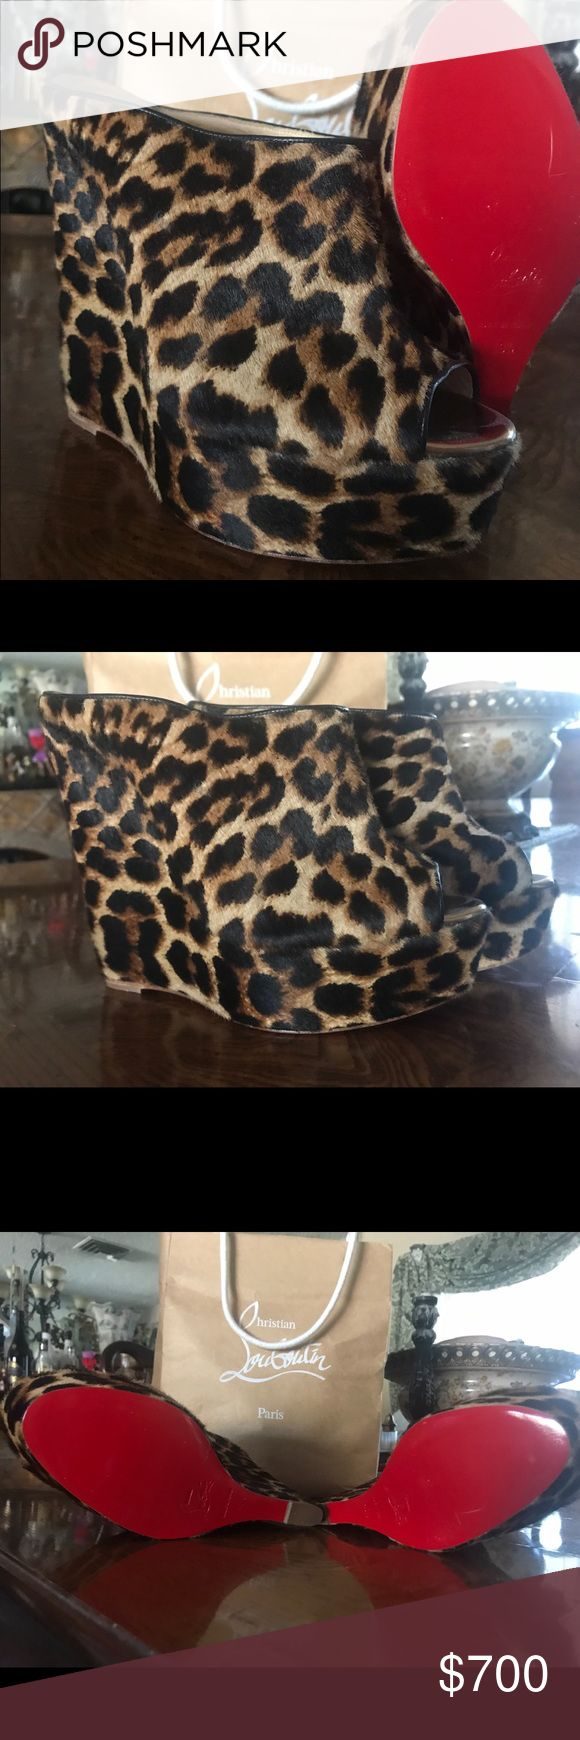 100% Authentic Christian Louboutin Leopard wedge Excellent Condition Never Worn Leopard Wedges. I do not have the box. Size 40 1/2 (But fits for a 9.5 foot) Christian Louboutin Shoes Wedges